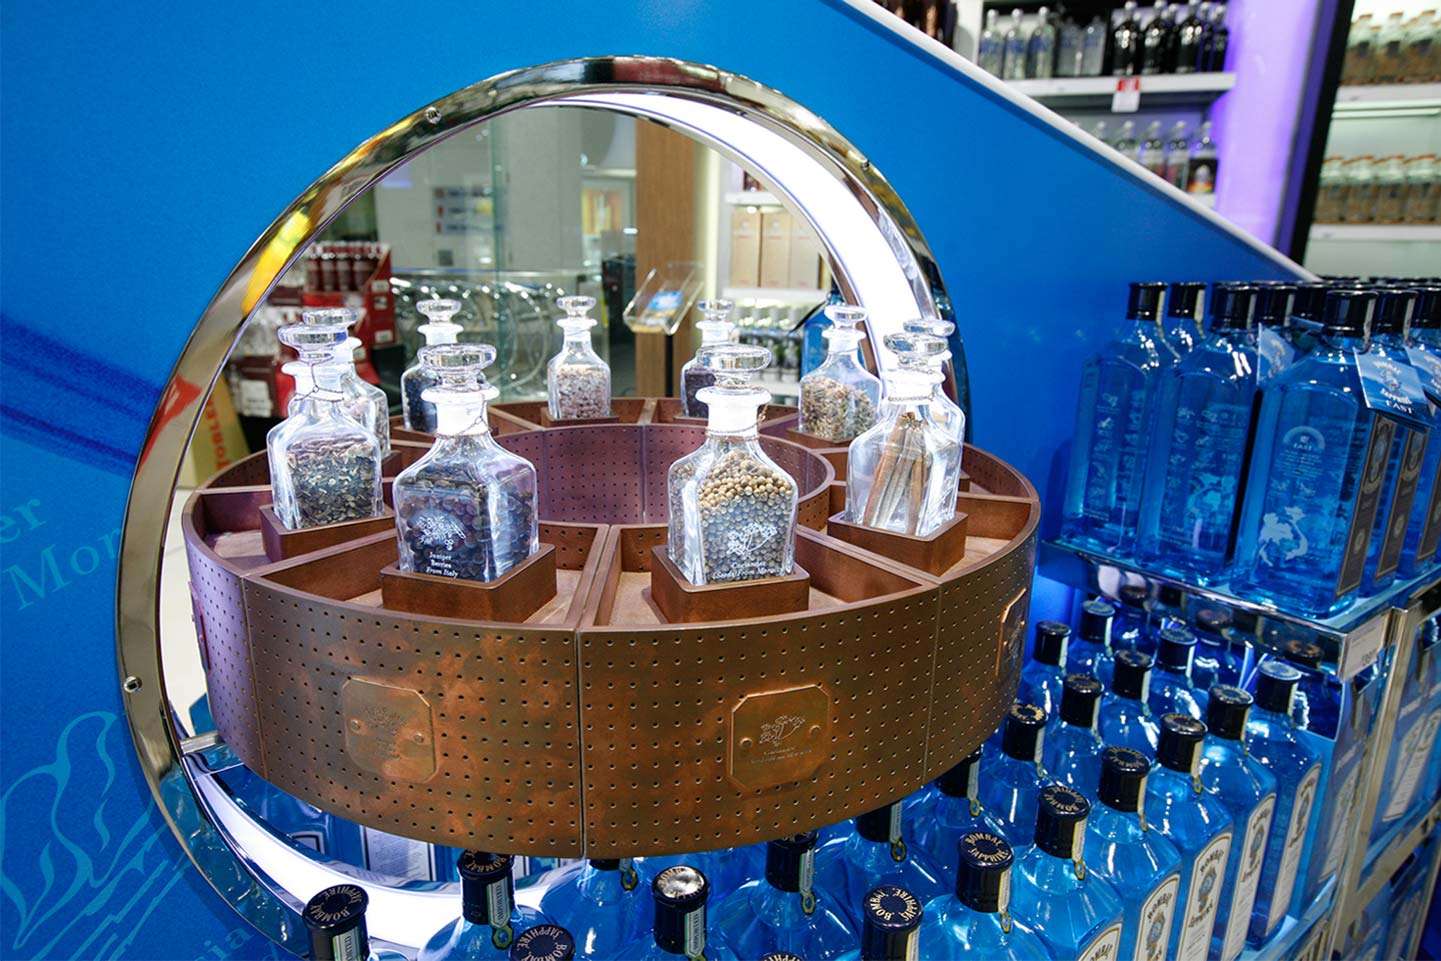 Detail of Bombay Sapphire visual merchandising display Sydney Airport designed by CampbellRigg